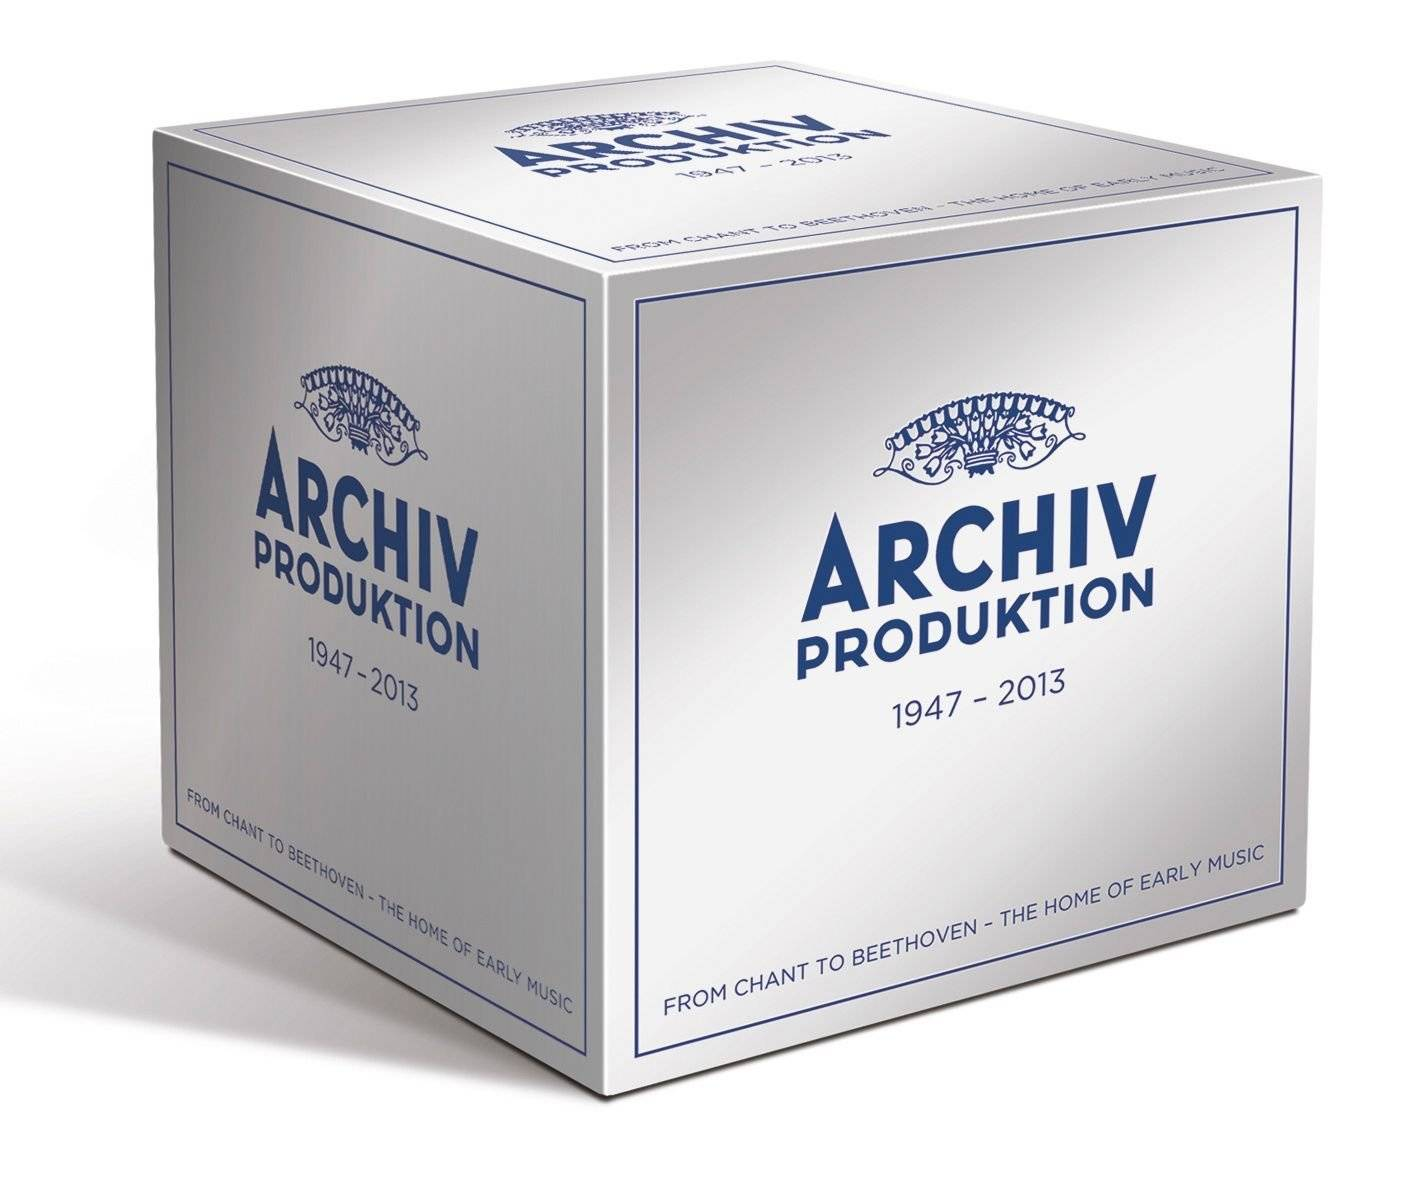 VA - Archiv Produktion 1947-2013: A Celebration of Artistic Excellence from the Home of Early Music (2013) (55 CDs Box Set)